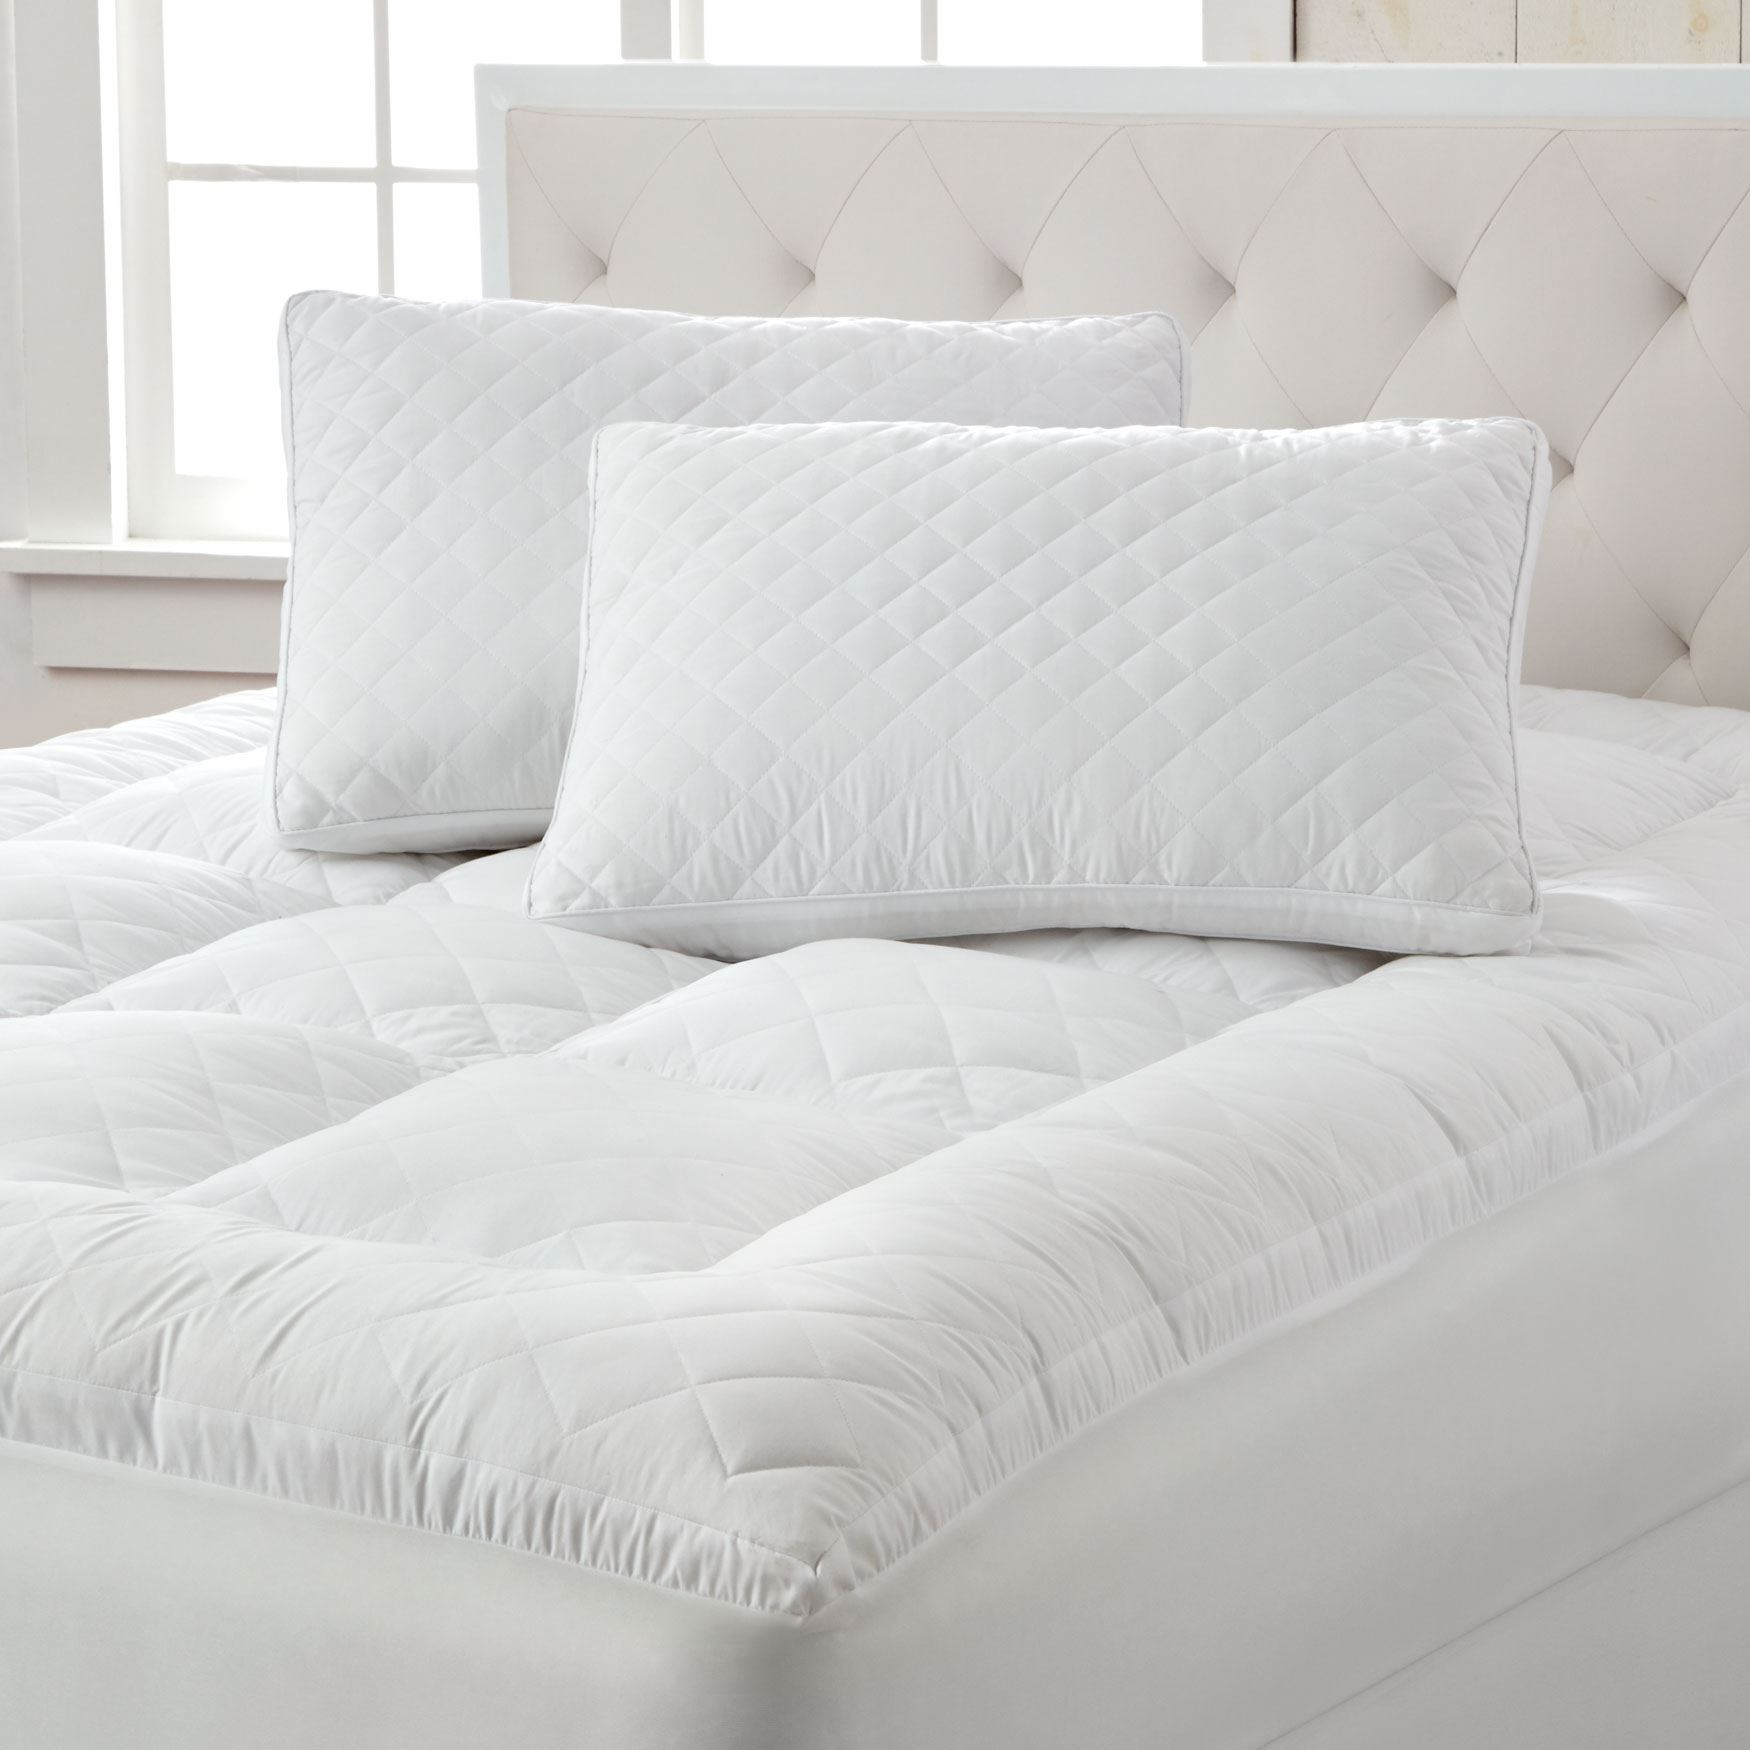 Small Diamond Quilted Mattress Topper| Mattress Pads ...